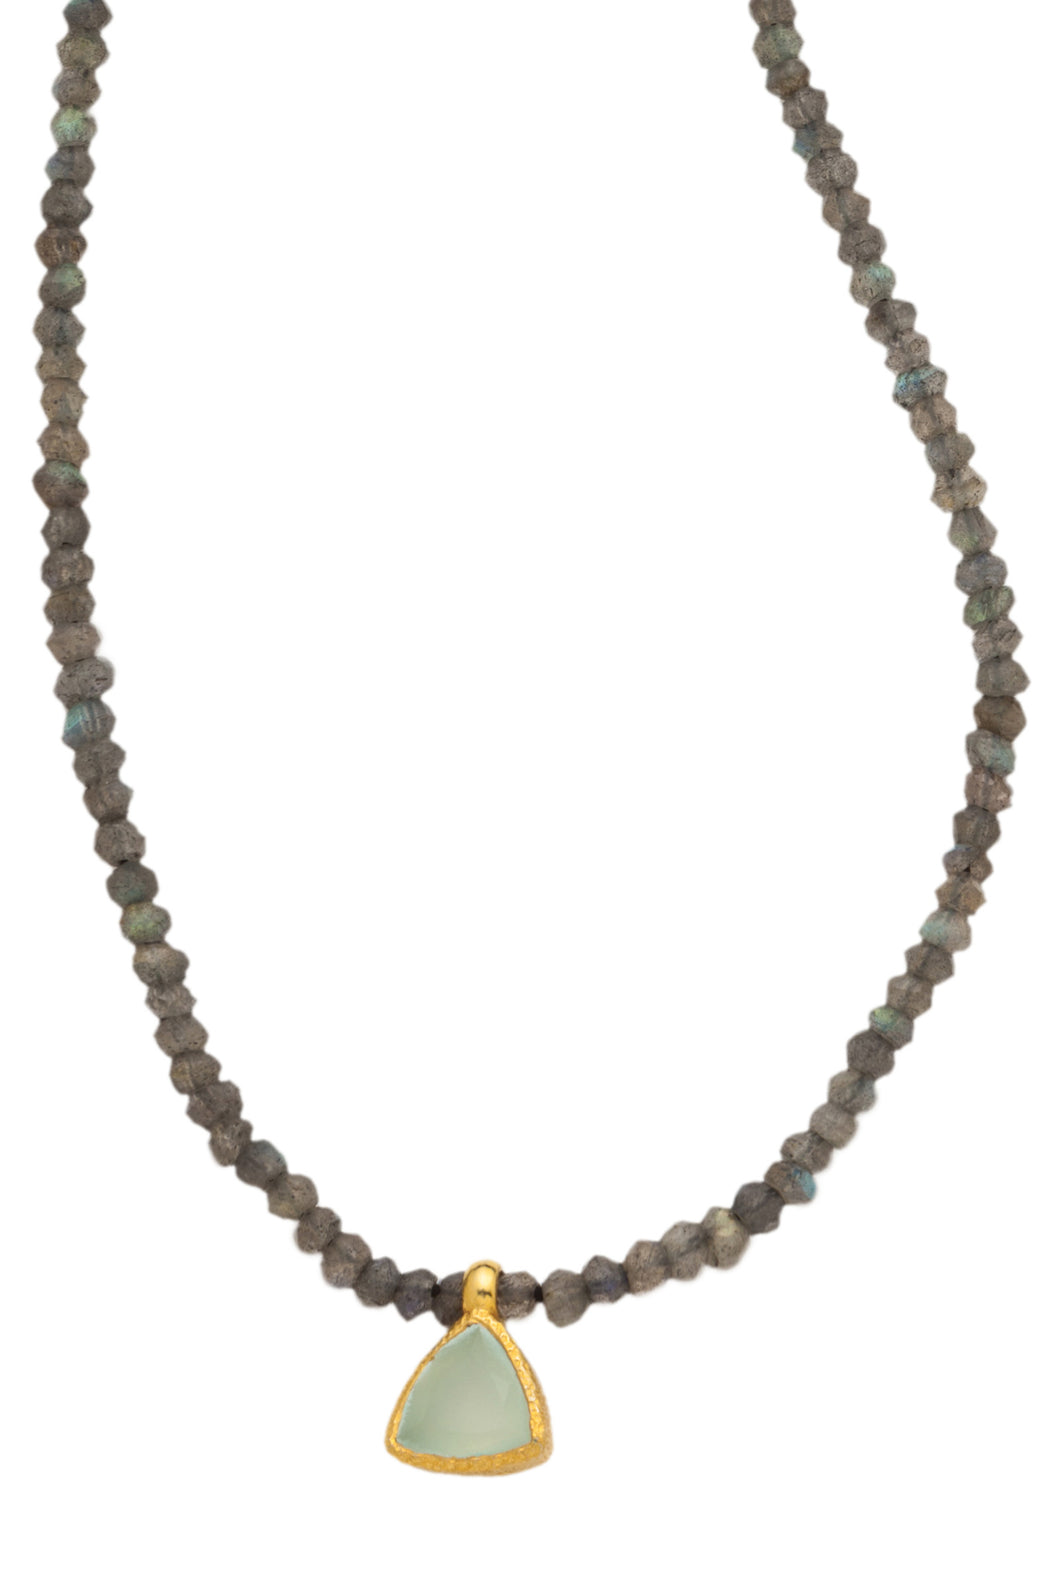 Labradorite faceted gemstone necklace with handmade pendant of Chalcedony set in 24kt gold vermeil NF188-LC